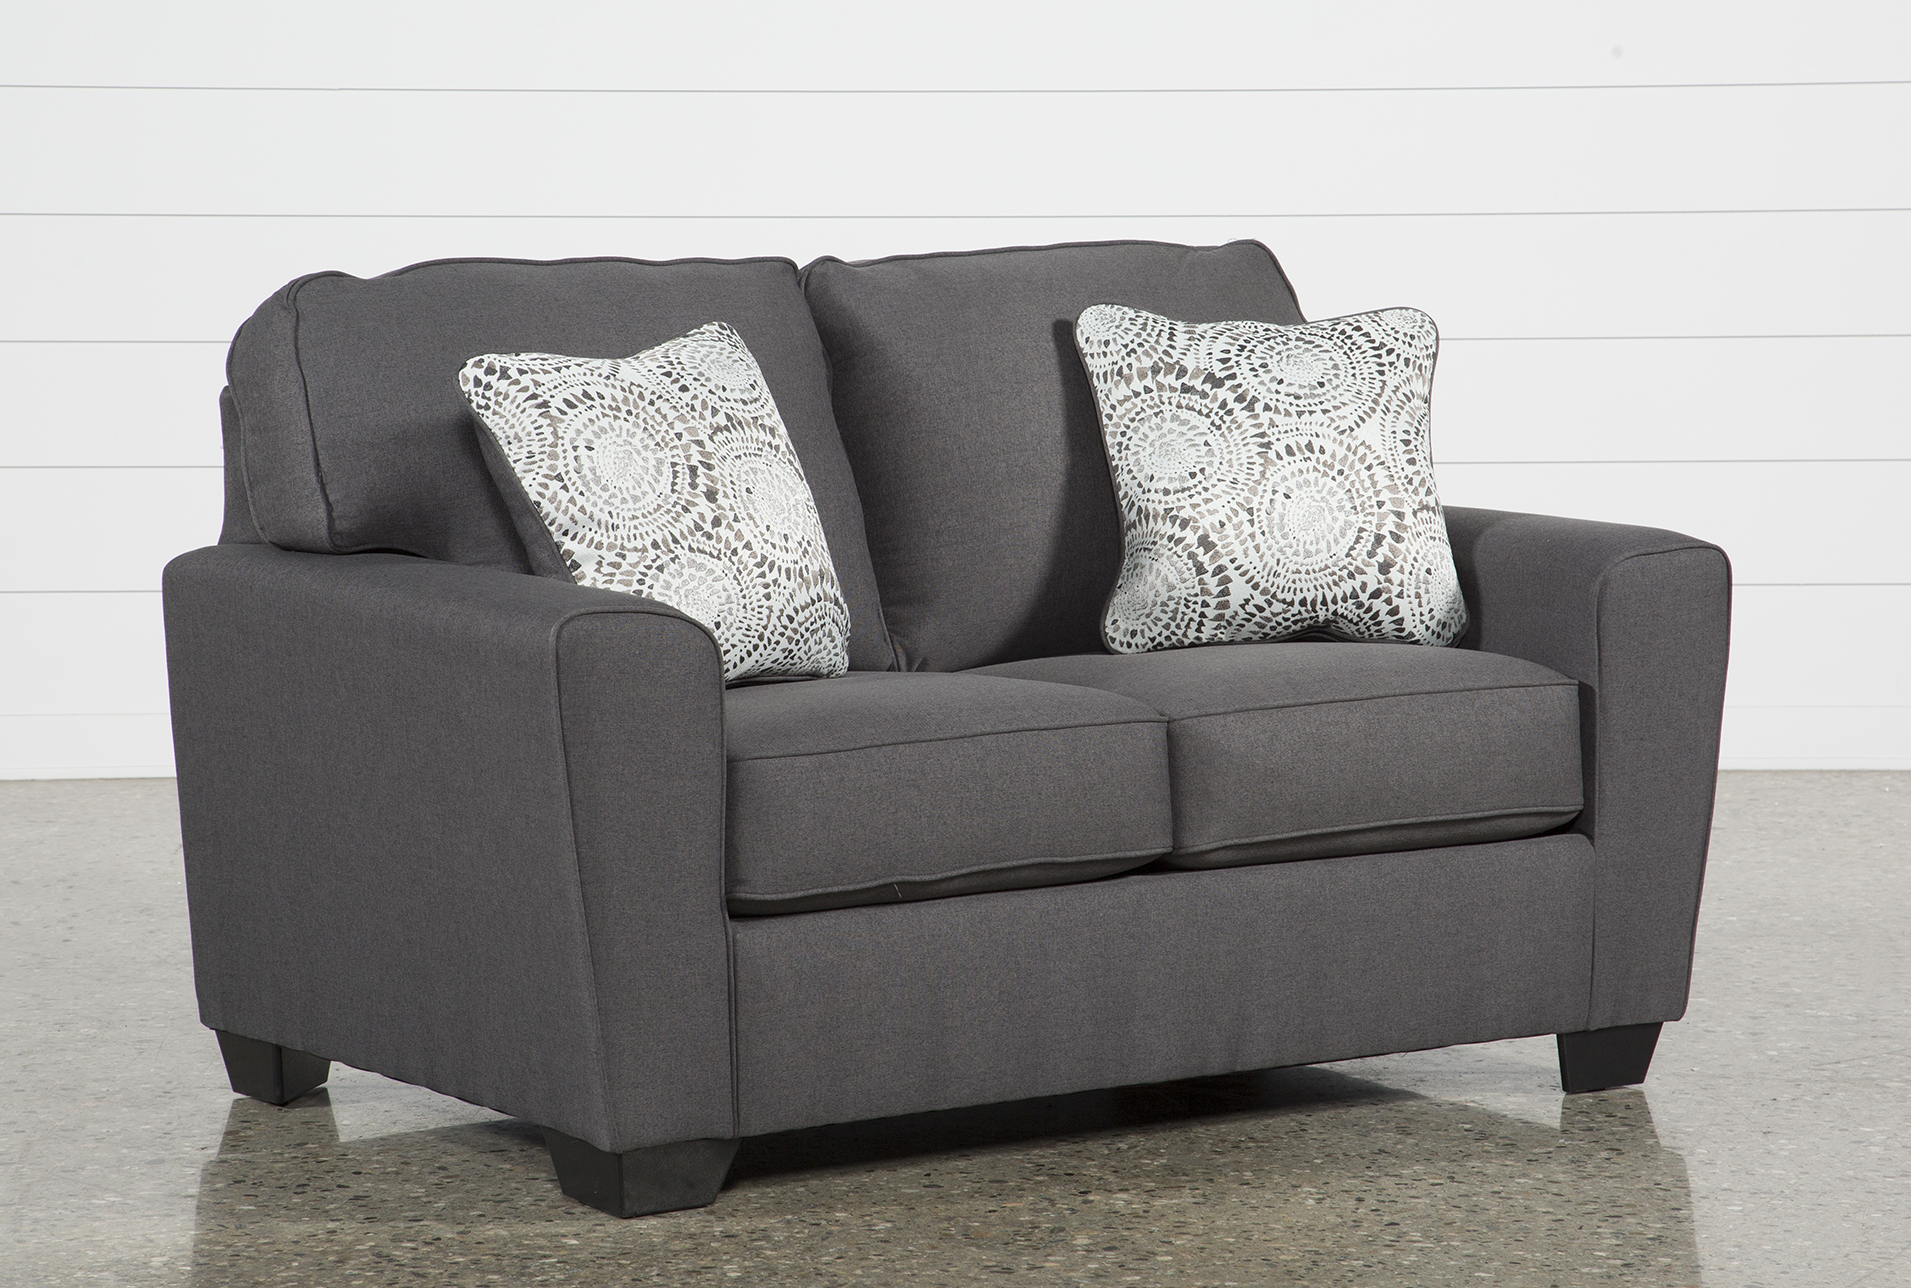 Charmant Mcdade Graphite Loveseat (Qty: 1) Has Been Successfully Added To Your Cart.